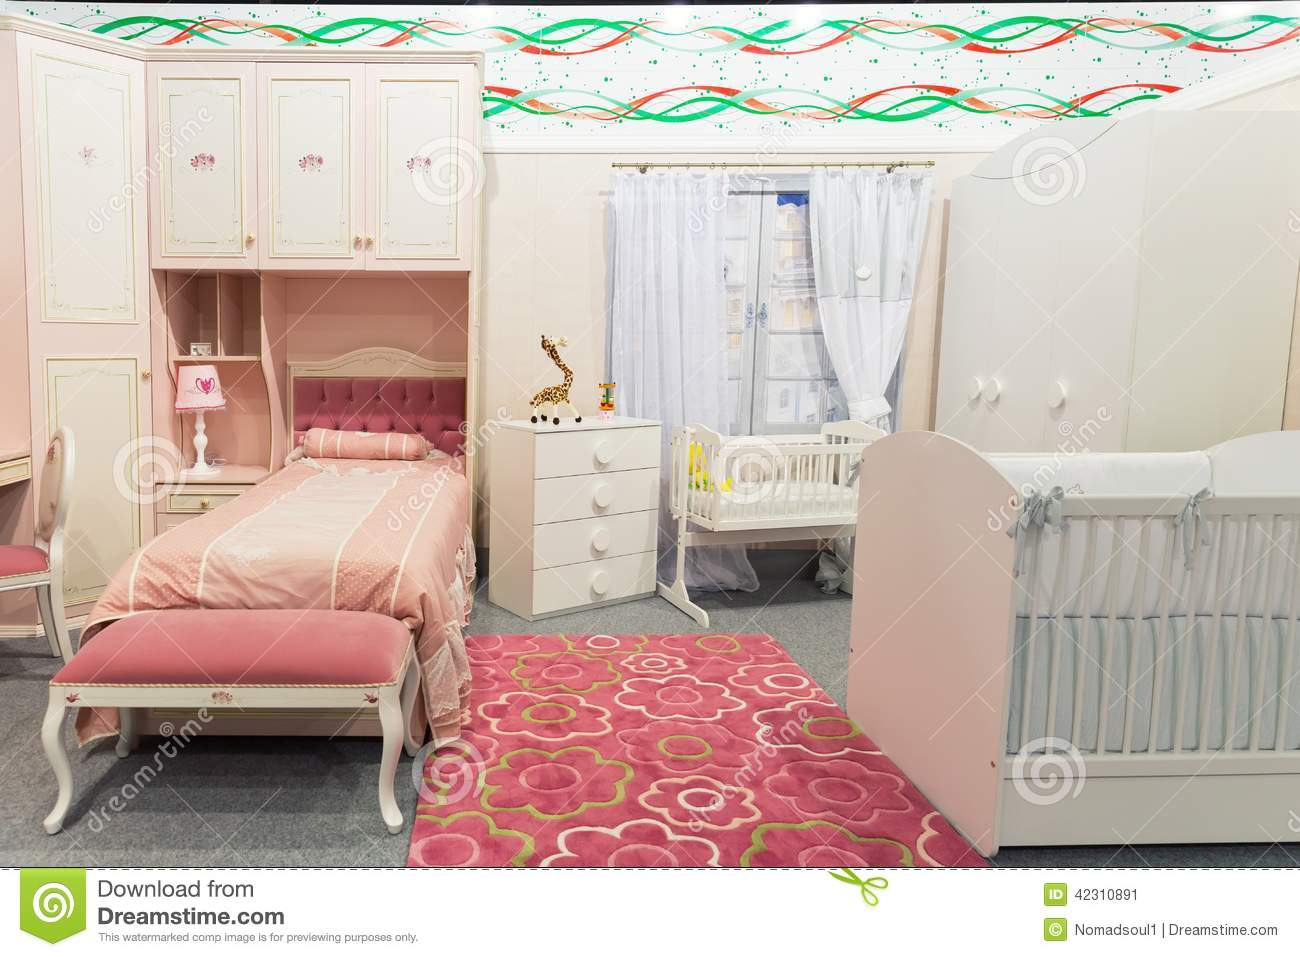 Pastel Colors Bedroom Babys Bedroom In Pastel Colors Stock Photo Image 42310891